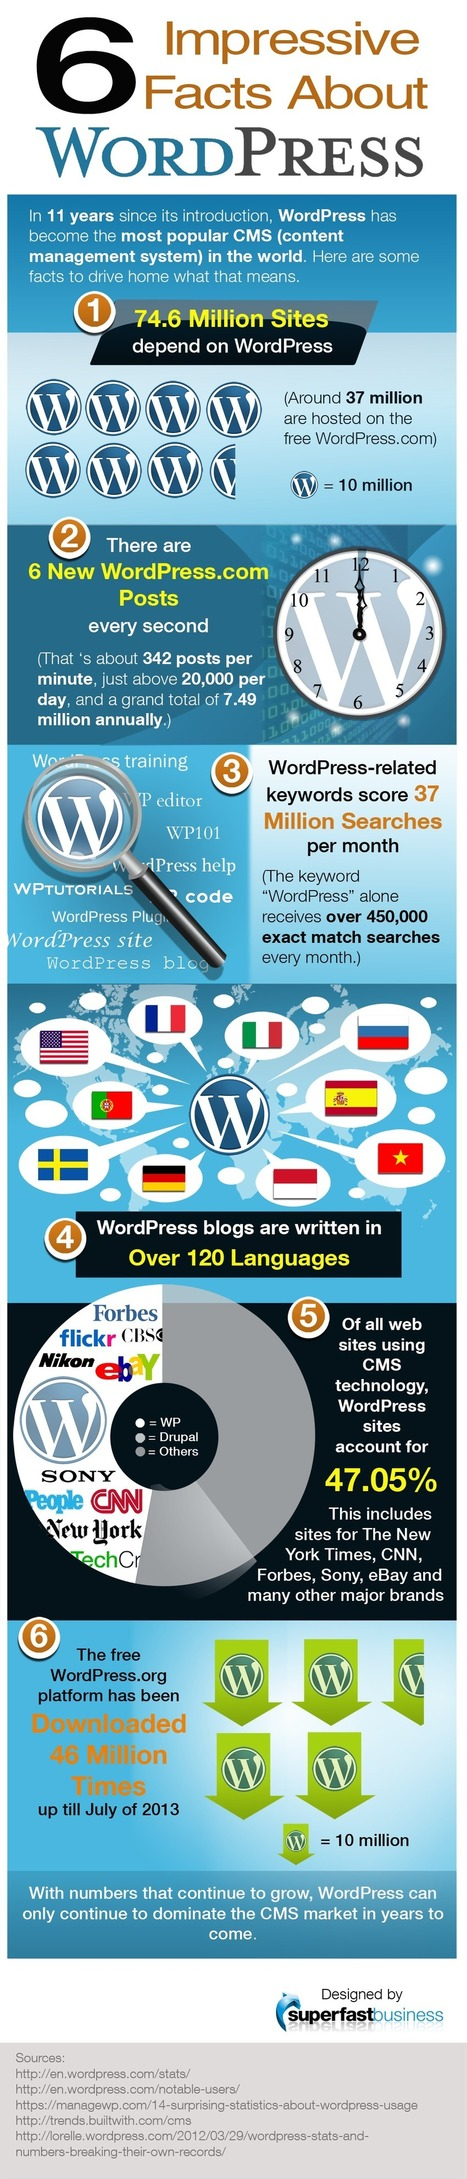 6 datos impresionantes sobre WordPress #infografia #infographic #socialmedia | Seo, Social Media Marketing | Scoop.it